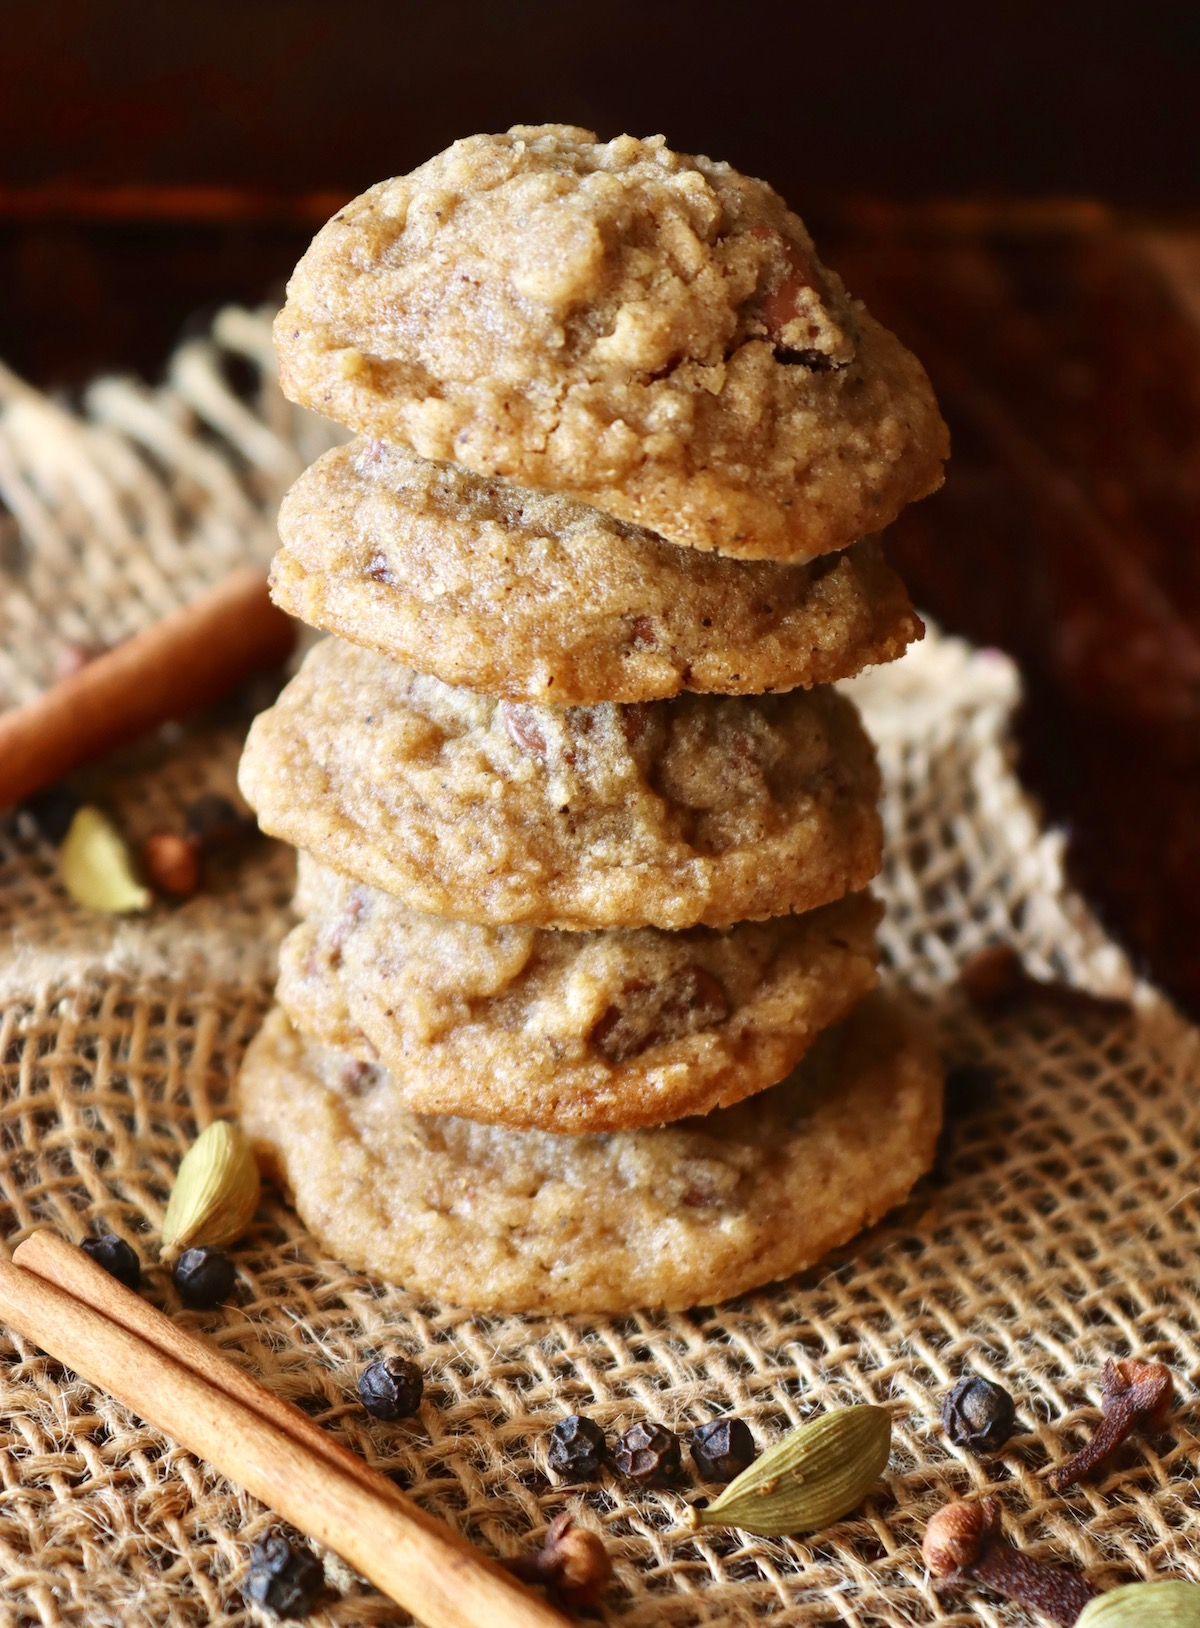 Stack of 5 Chocolate Chai Cookies with a cinnamon stick.